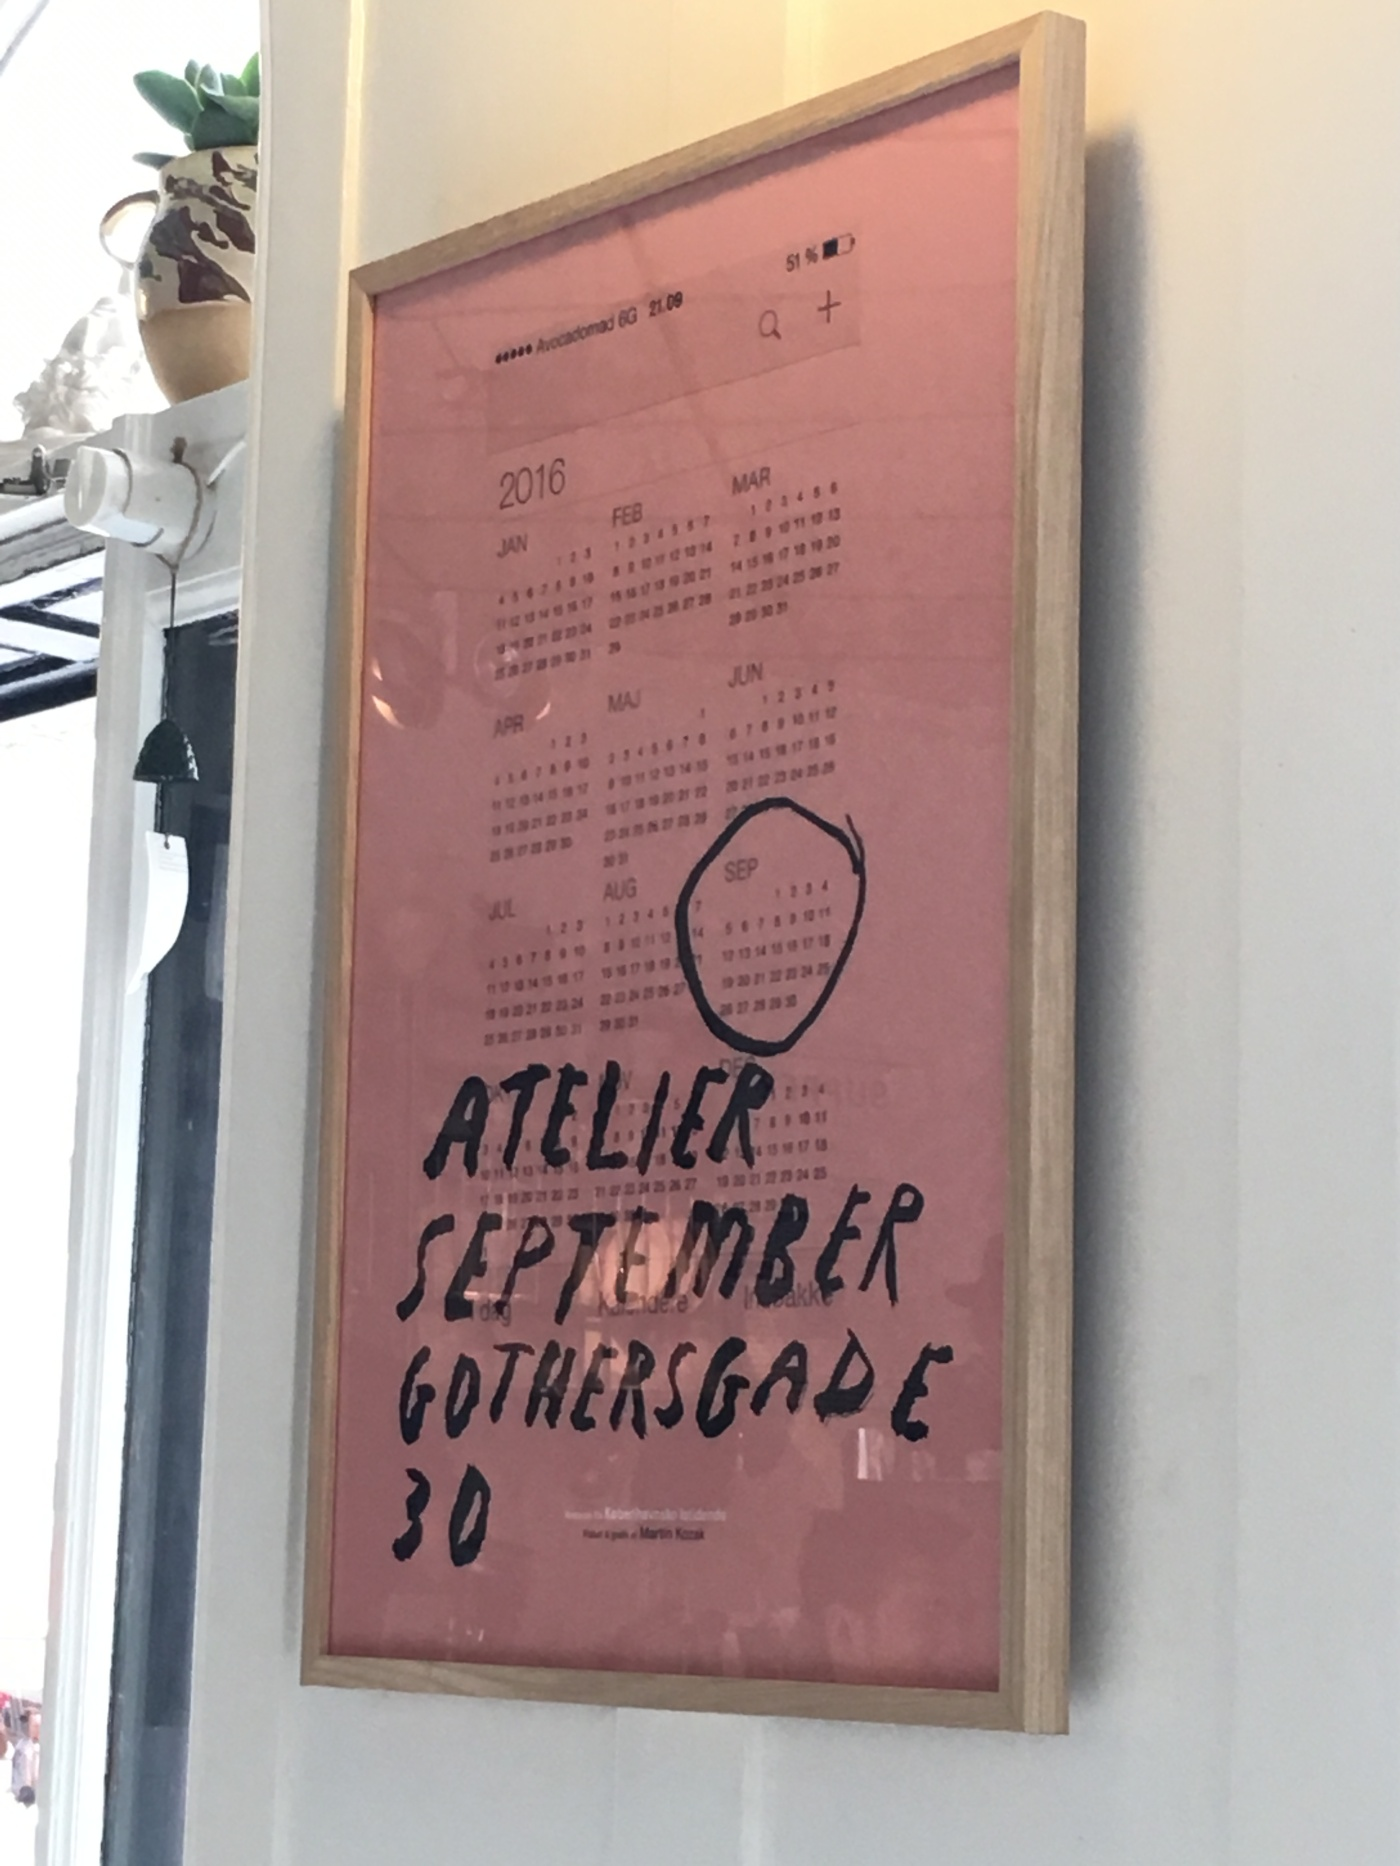 A Vintage Poster at Café Atelier September in Copenhagen, Denmark